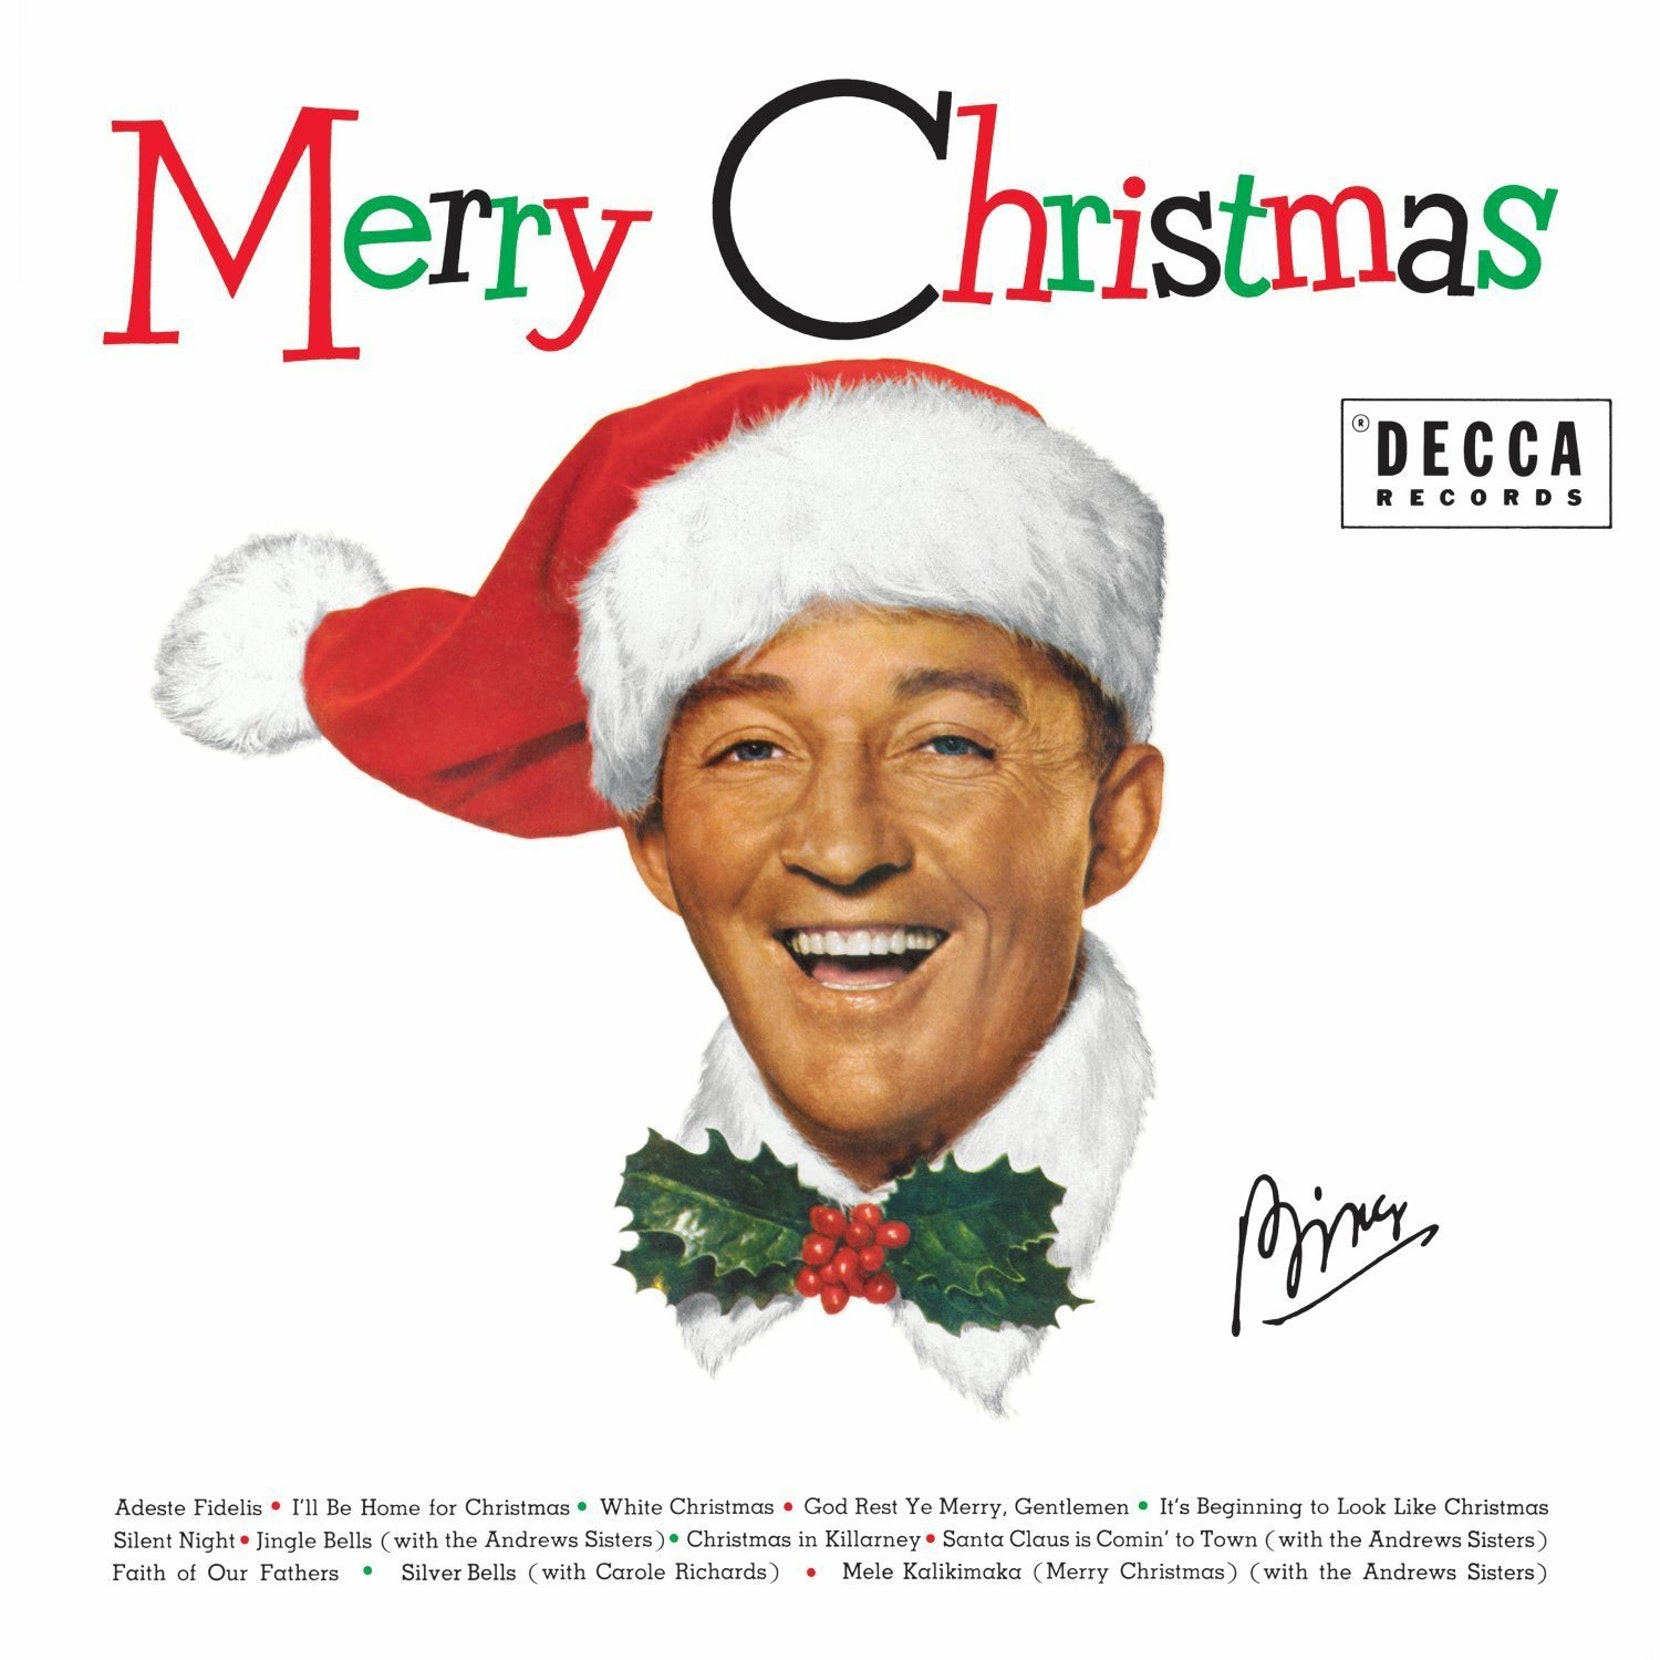 bing crosby merry christmas - Andy Williams White Christmas